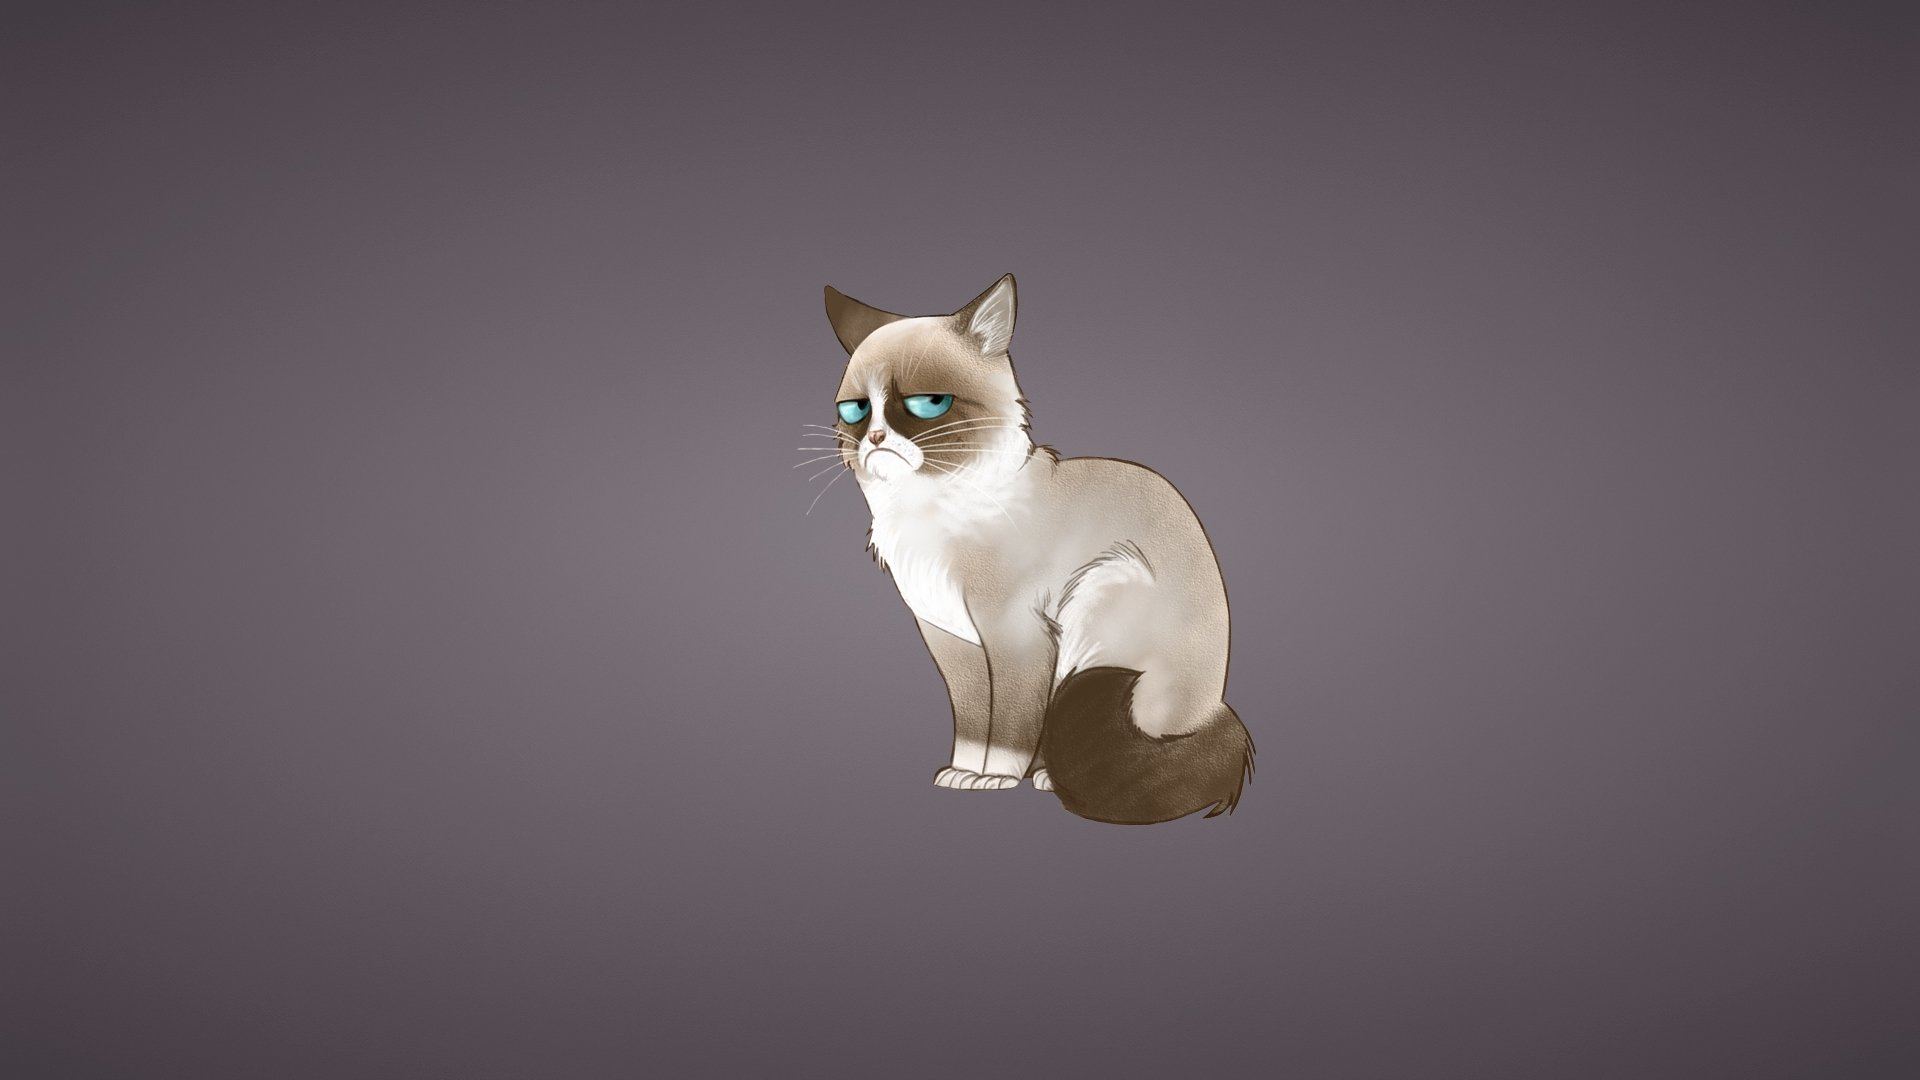 Download Grumpy Cat wallpaper 1920x1080